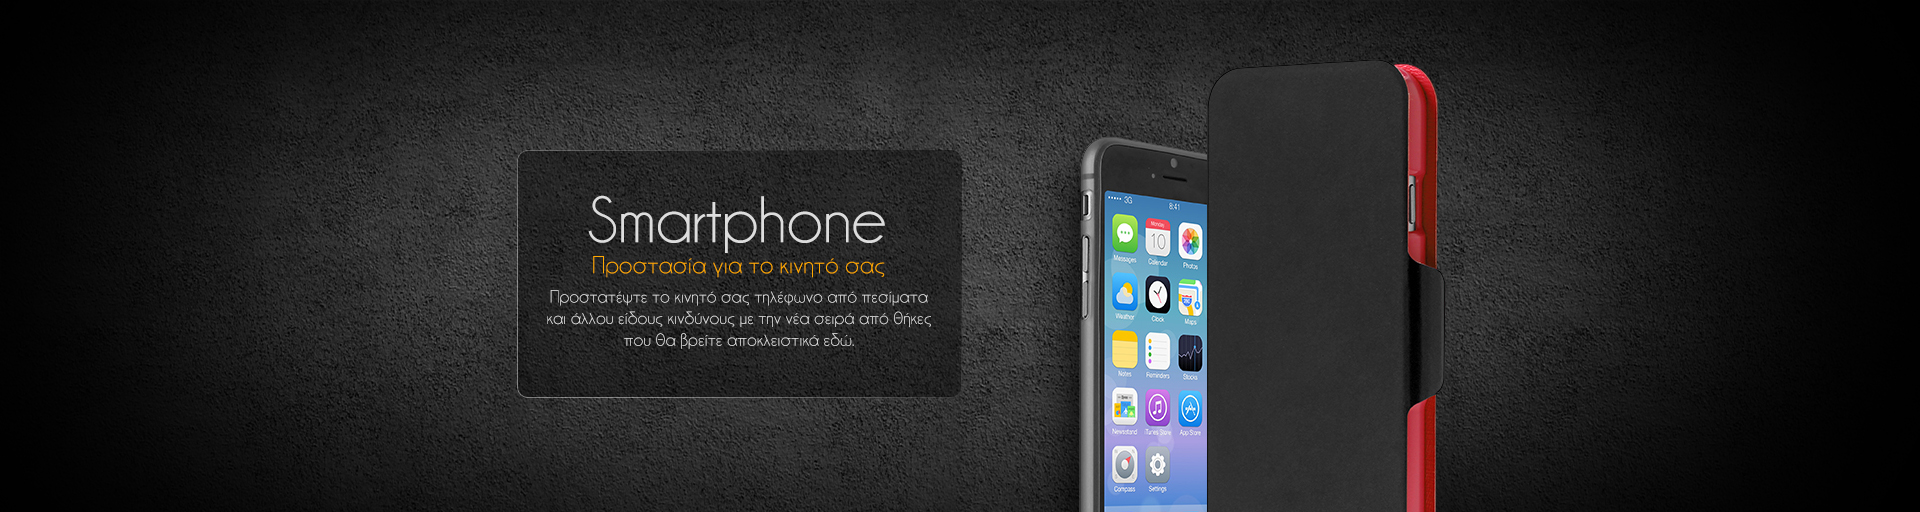 BANNER- smartphone1-PROTECTION